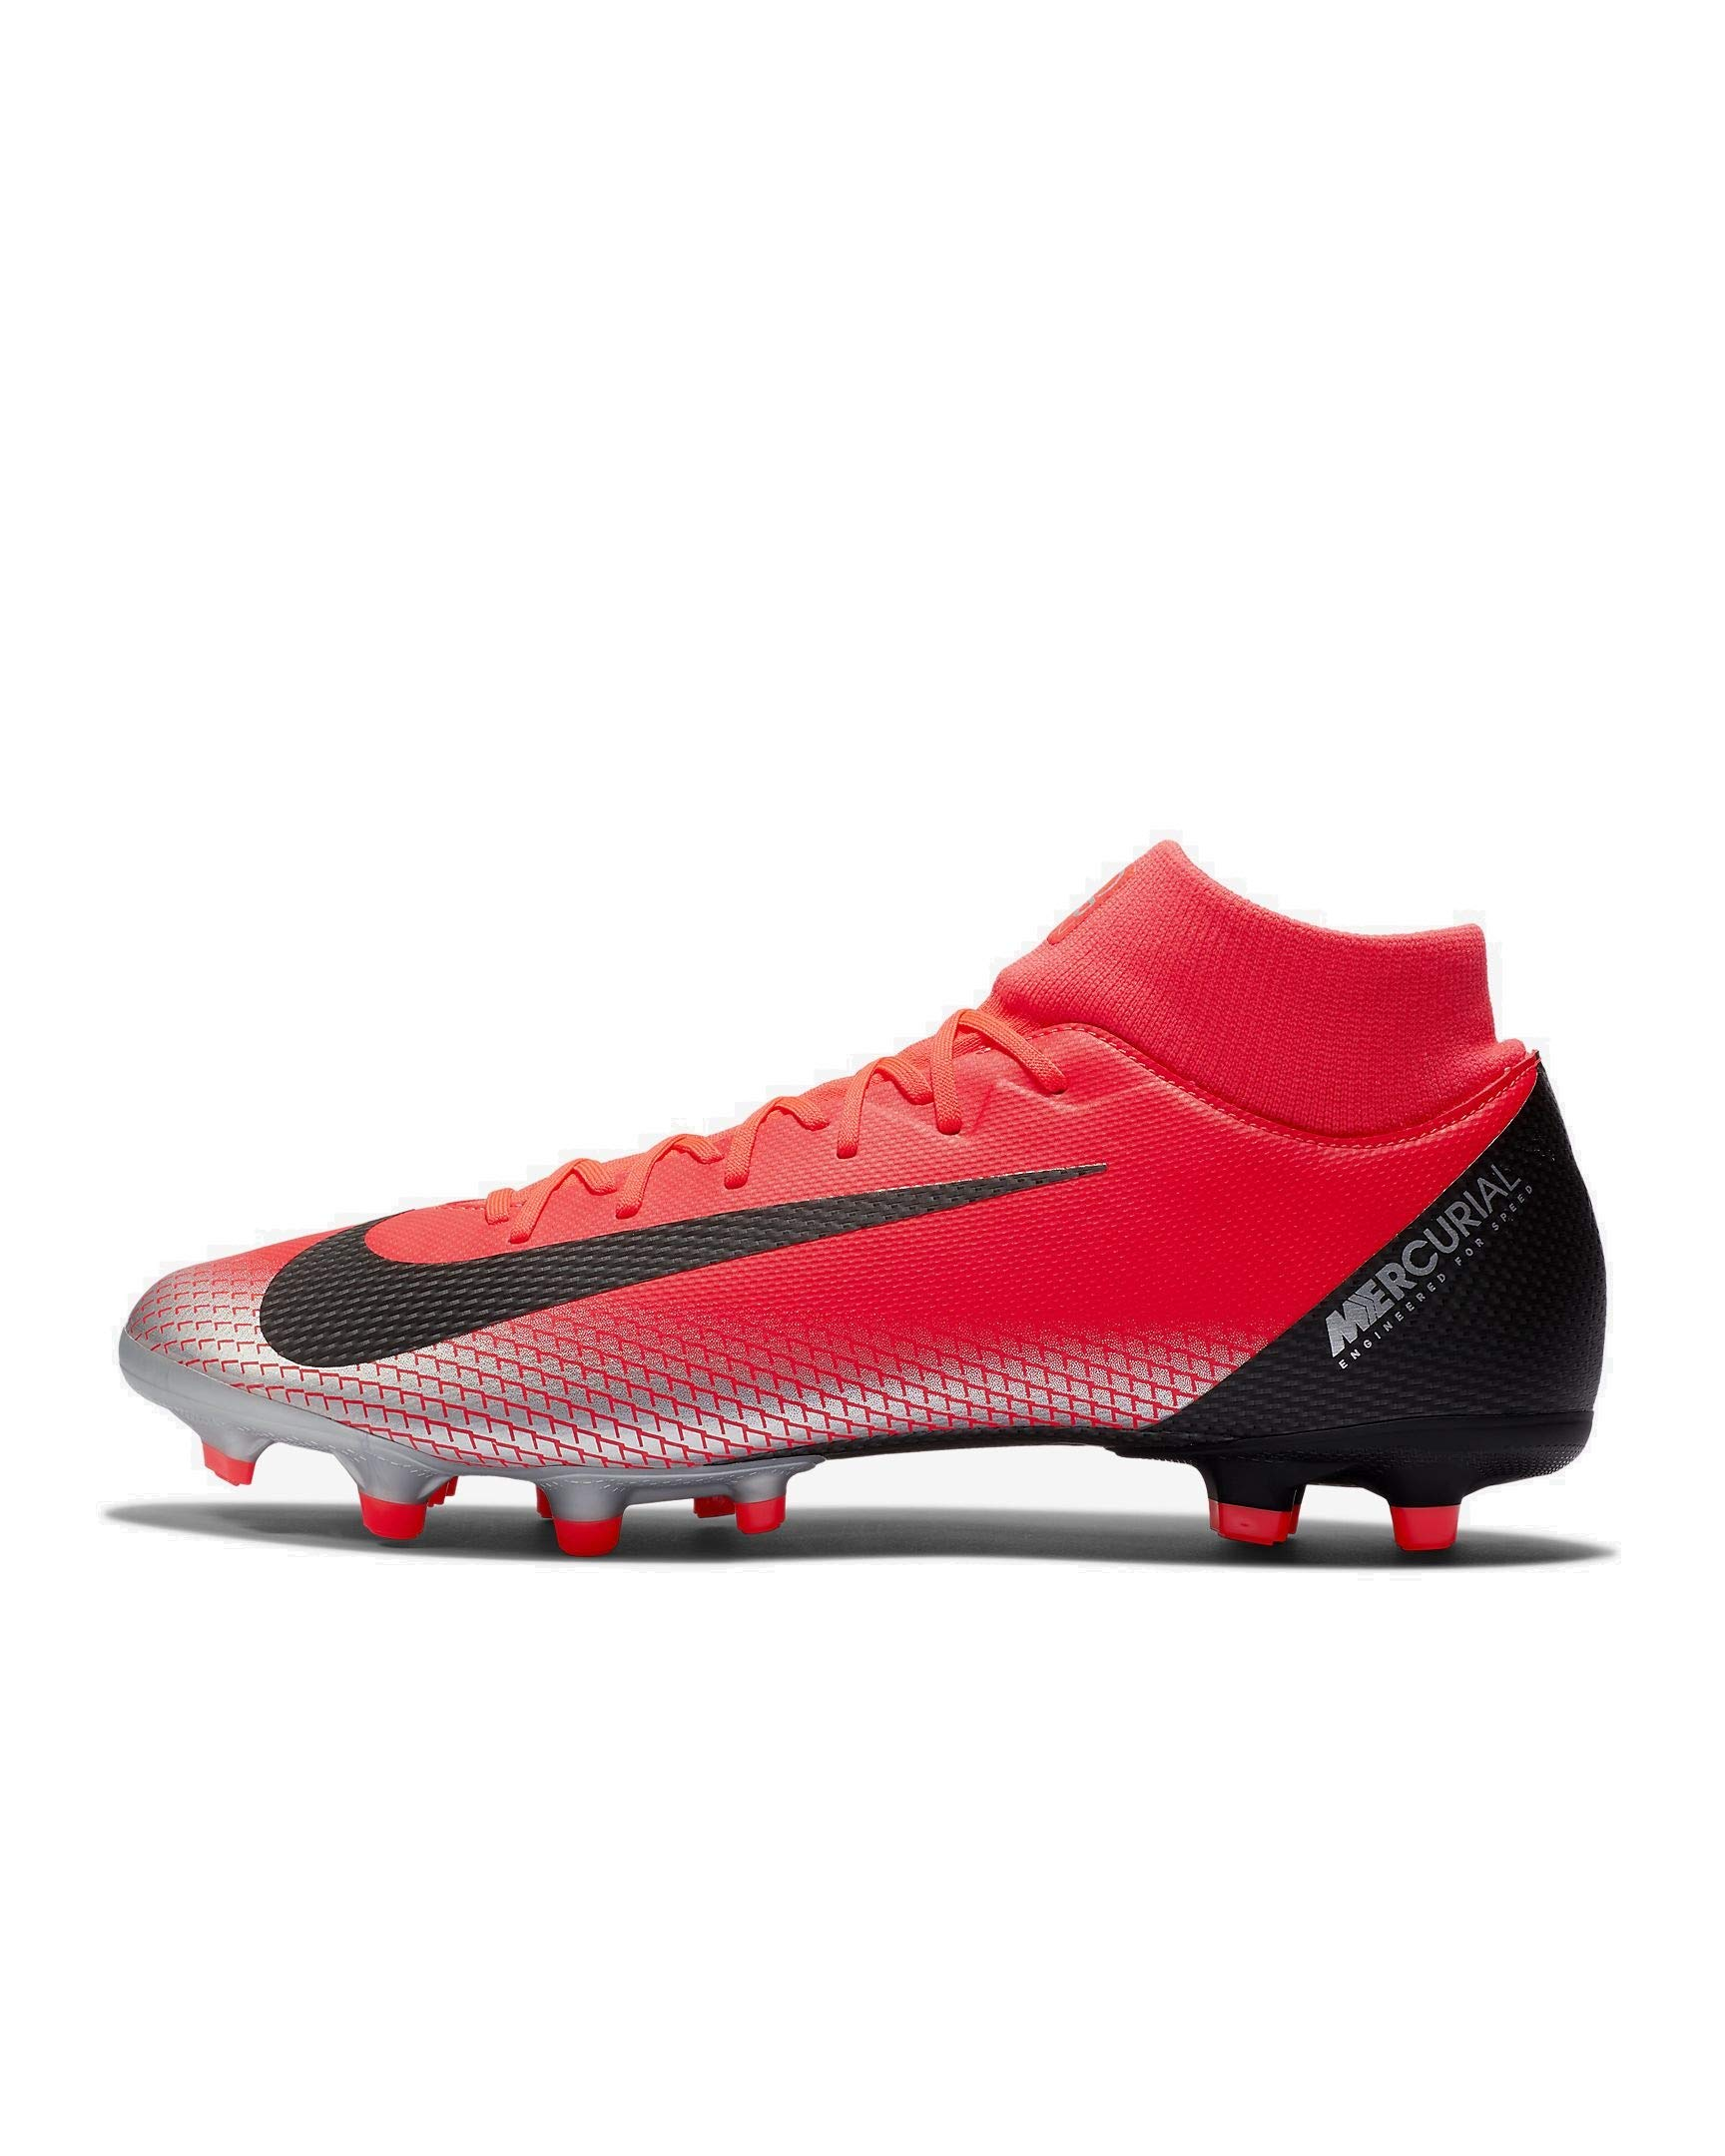 info for 5fb79 8c07a Nike Superfly 6 Academy (MG) Men's Multi-Ground Soccer Cleats (8)